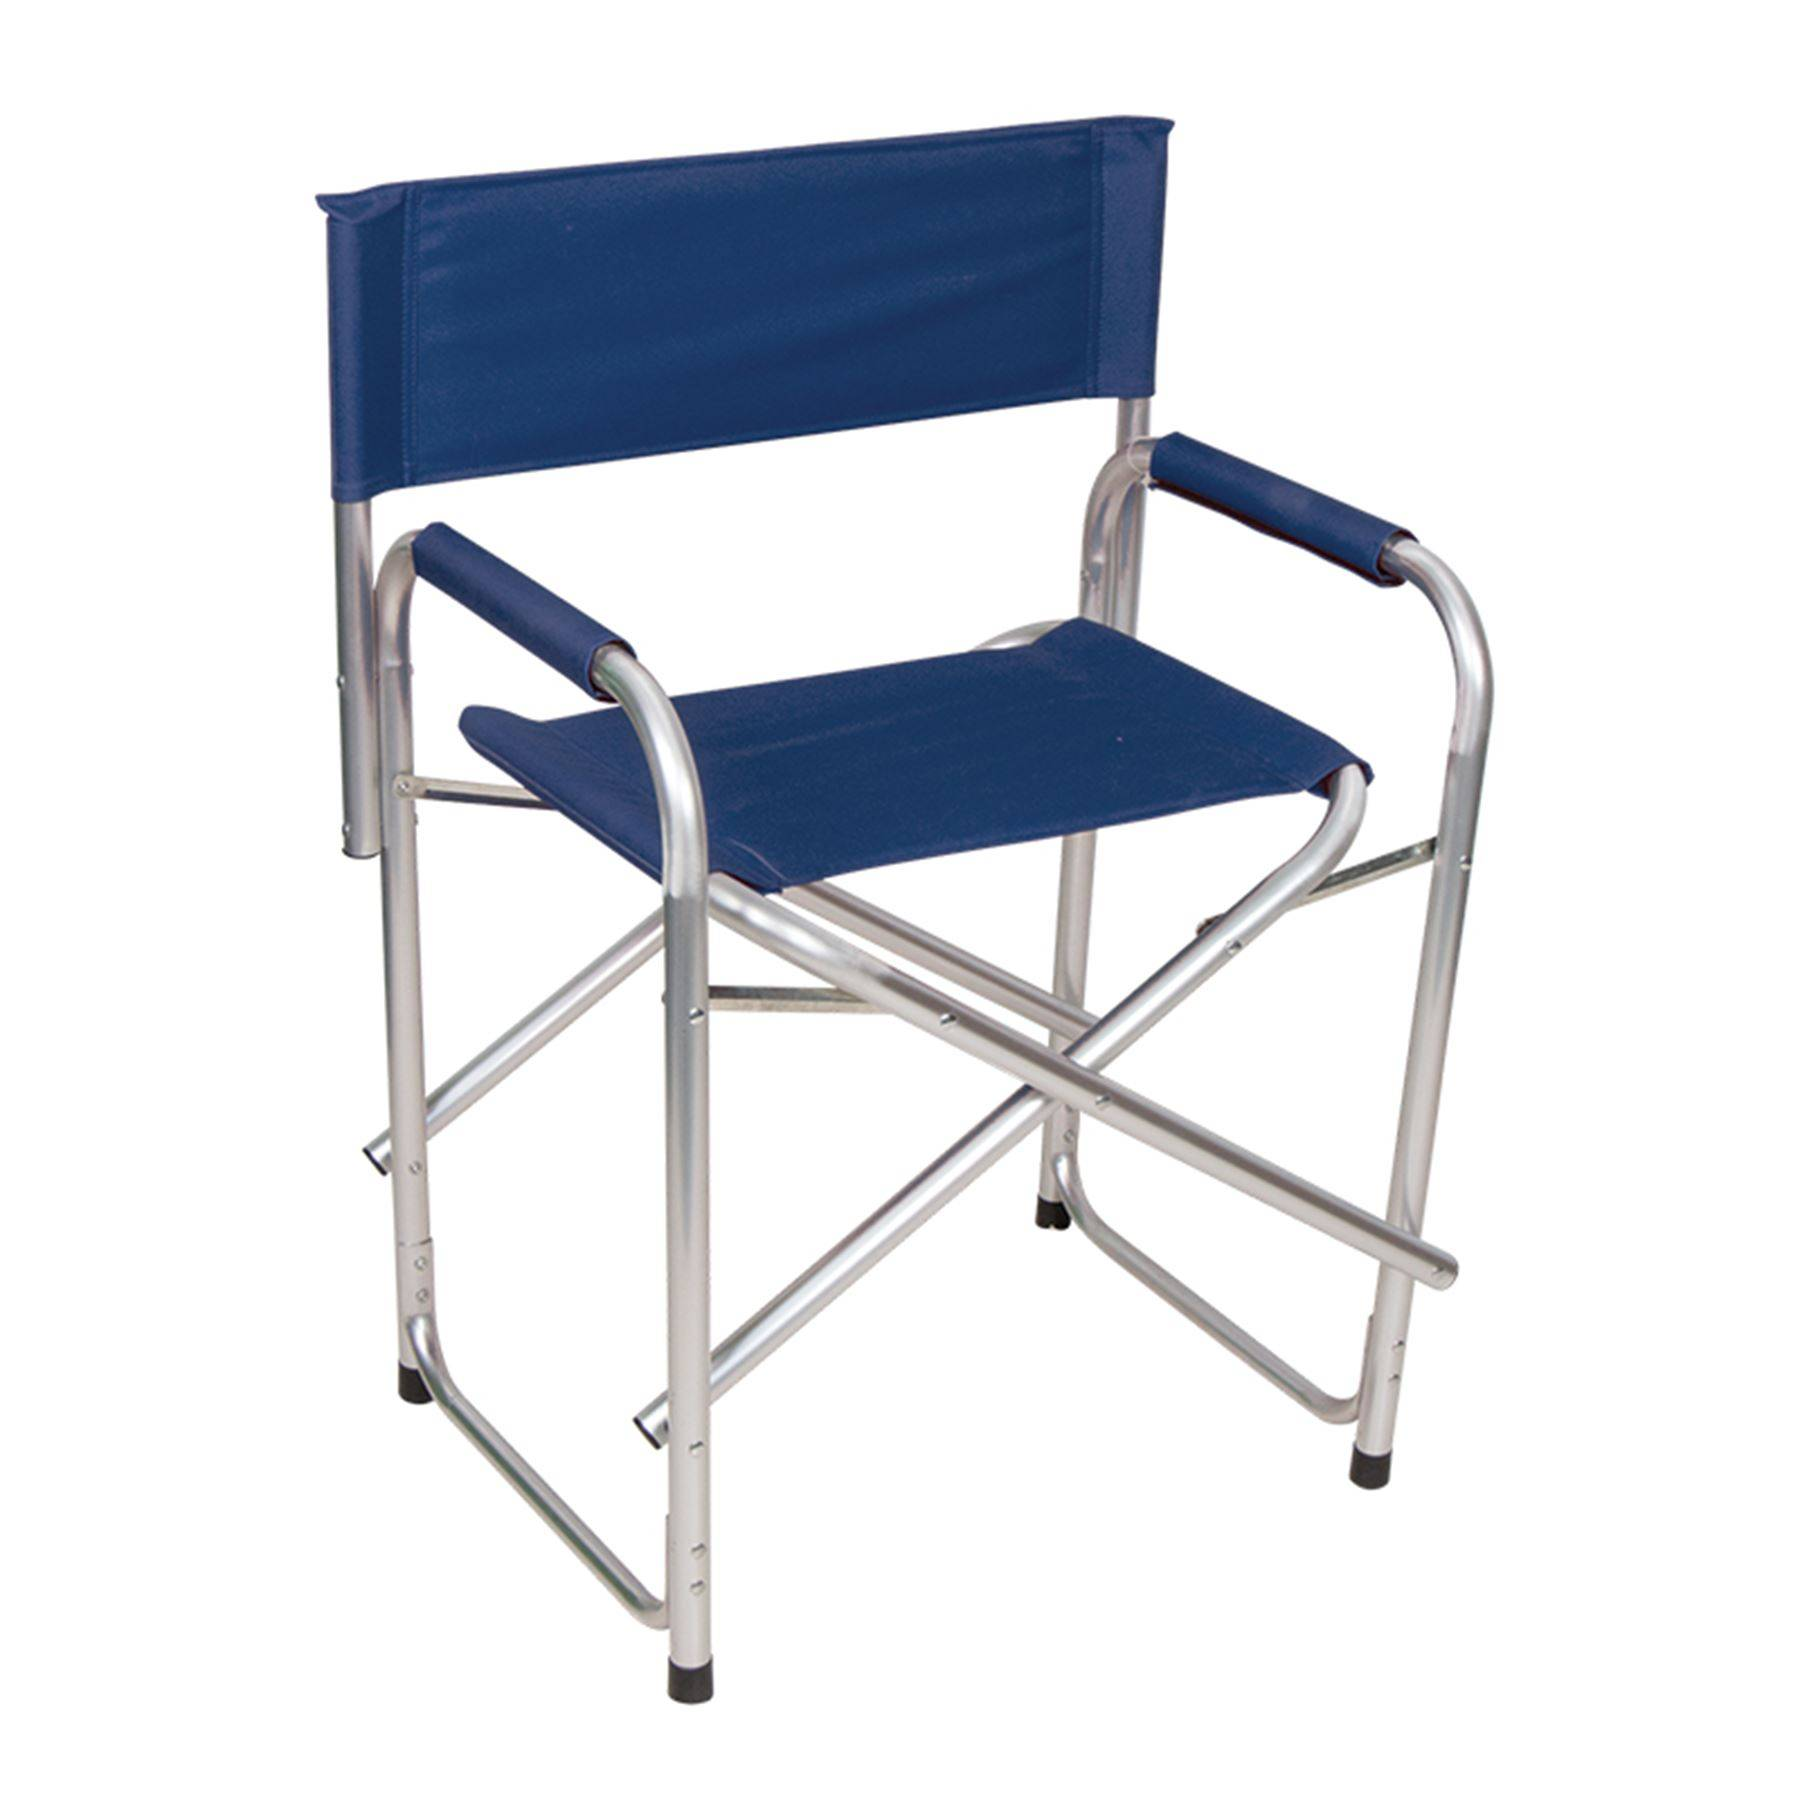 DuraTech Folding Directors Chair in DuraTech Stall